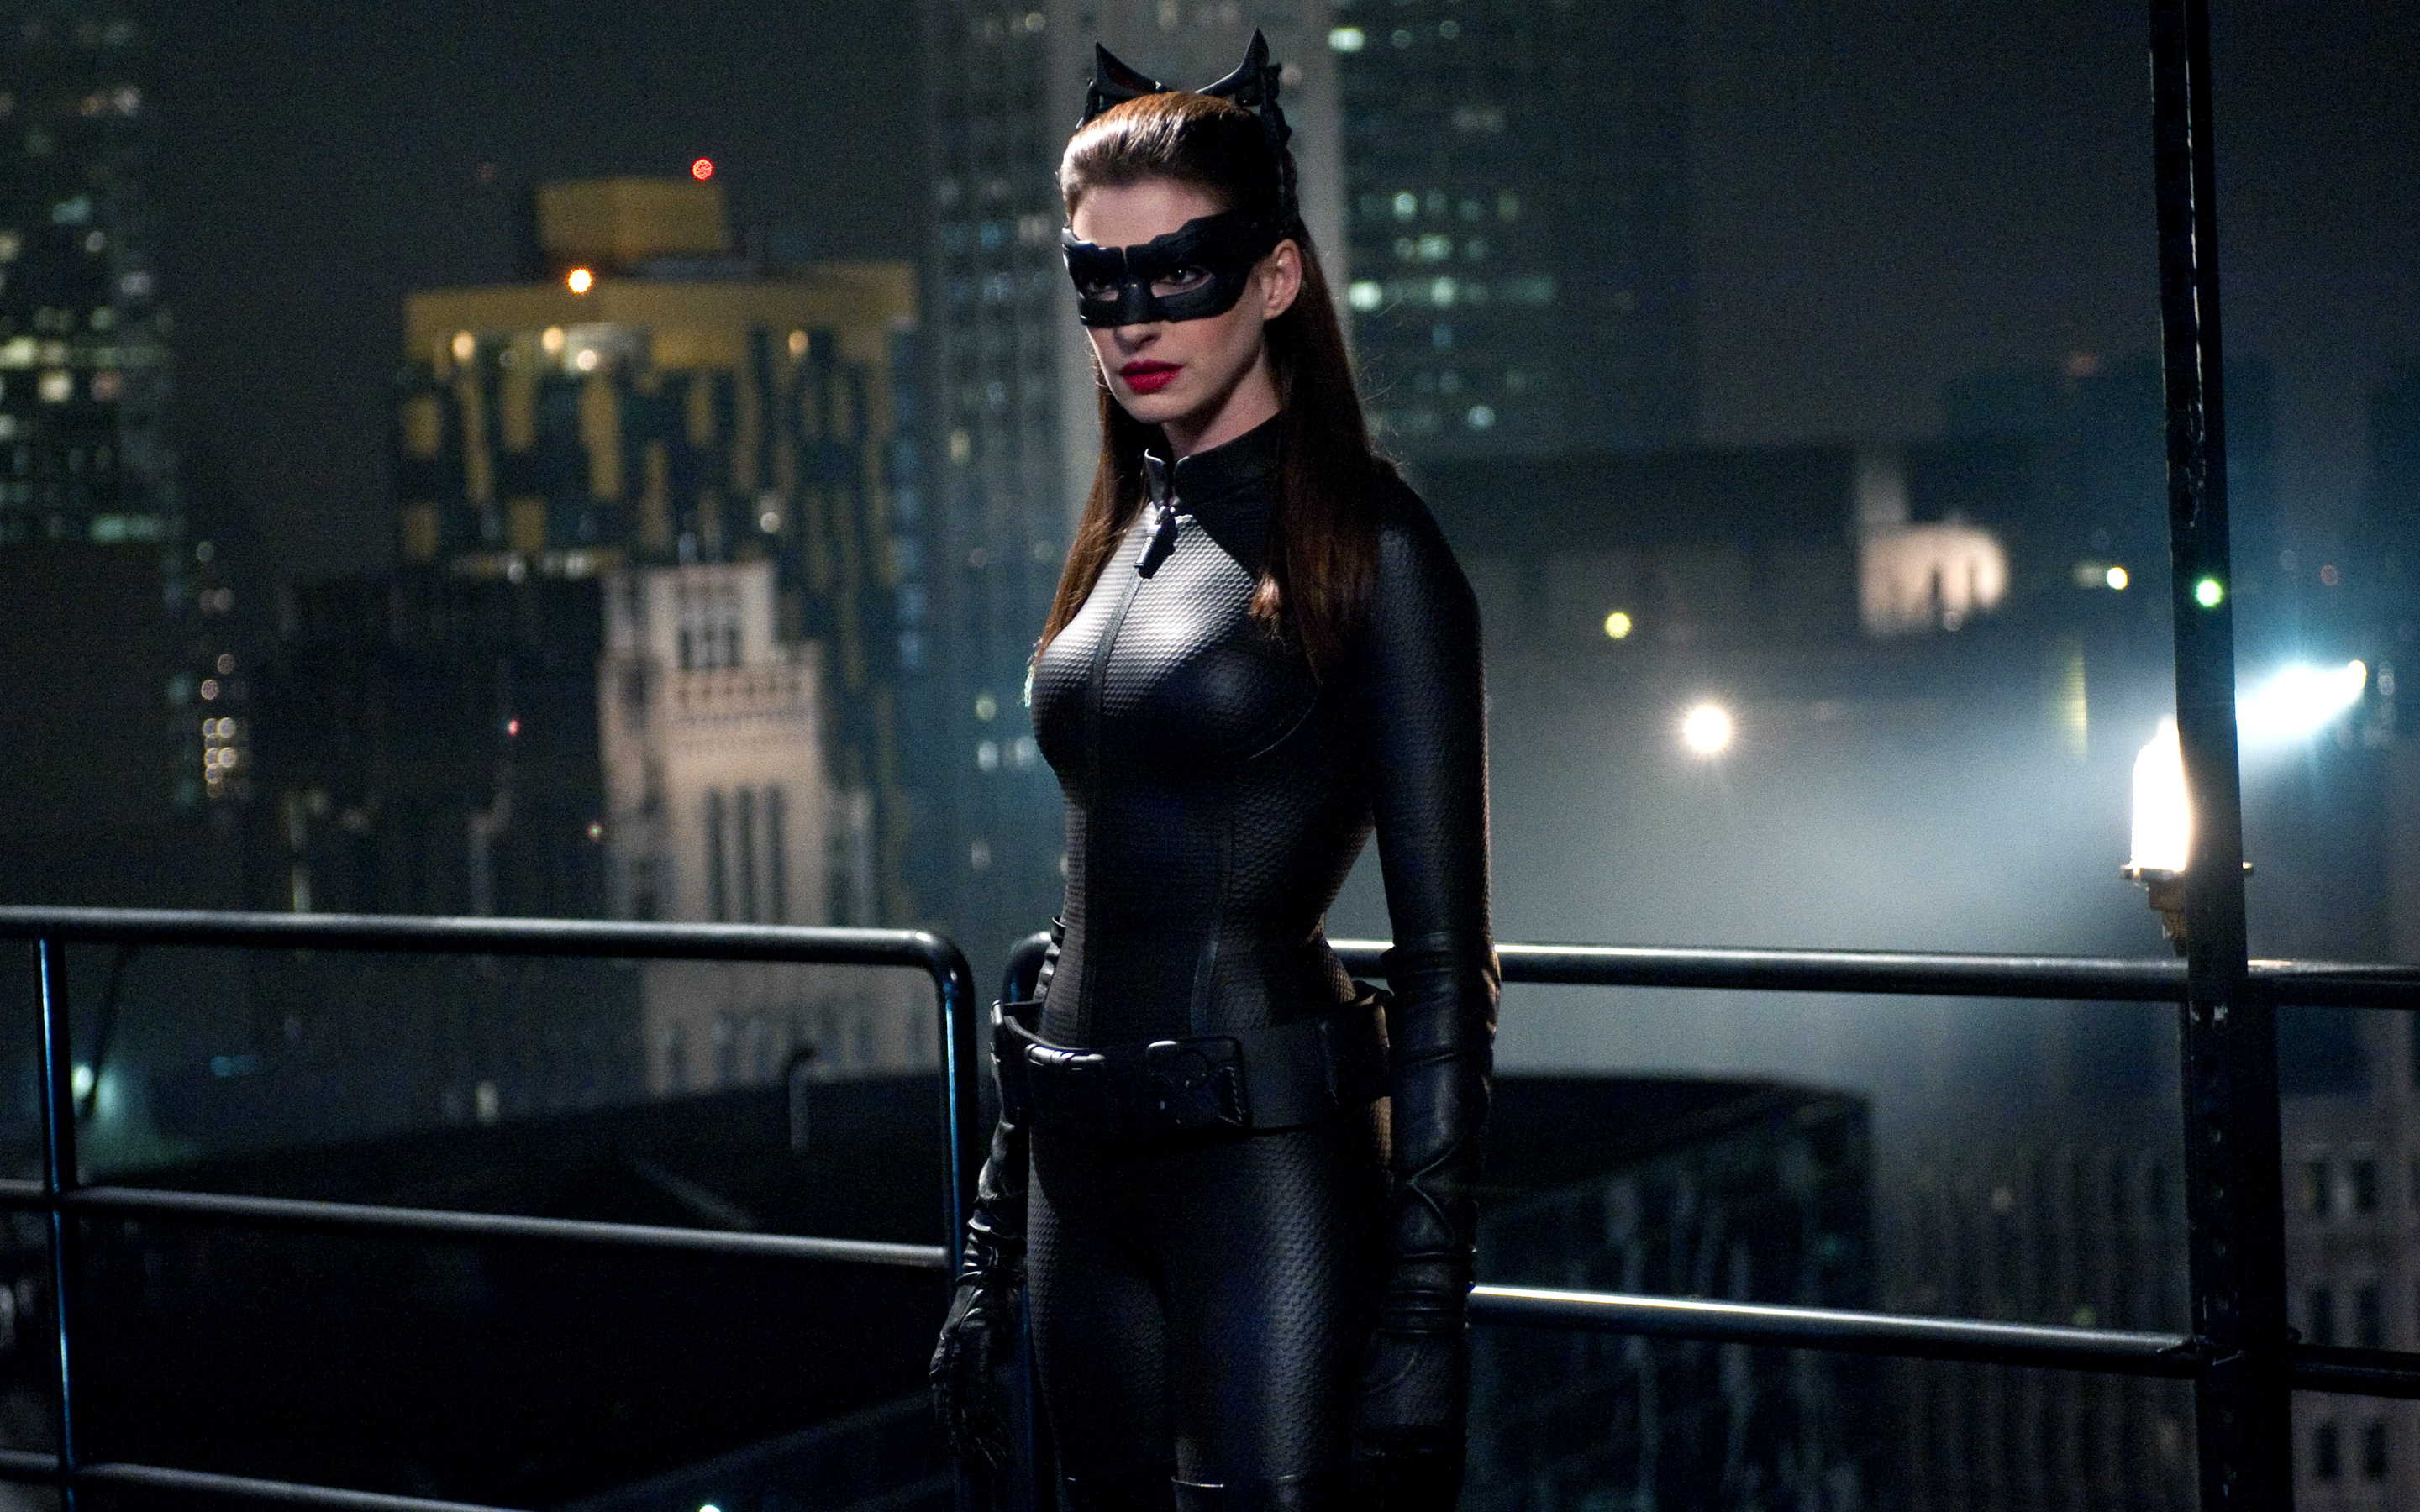 Anne Hathaway Catwoman Dark Knight Rises wallpaper download